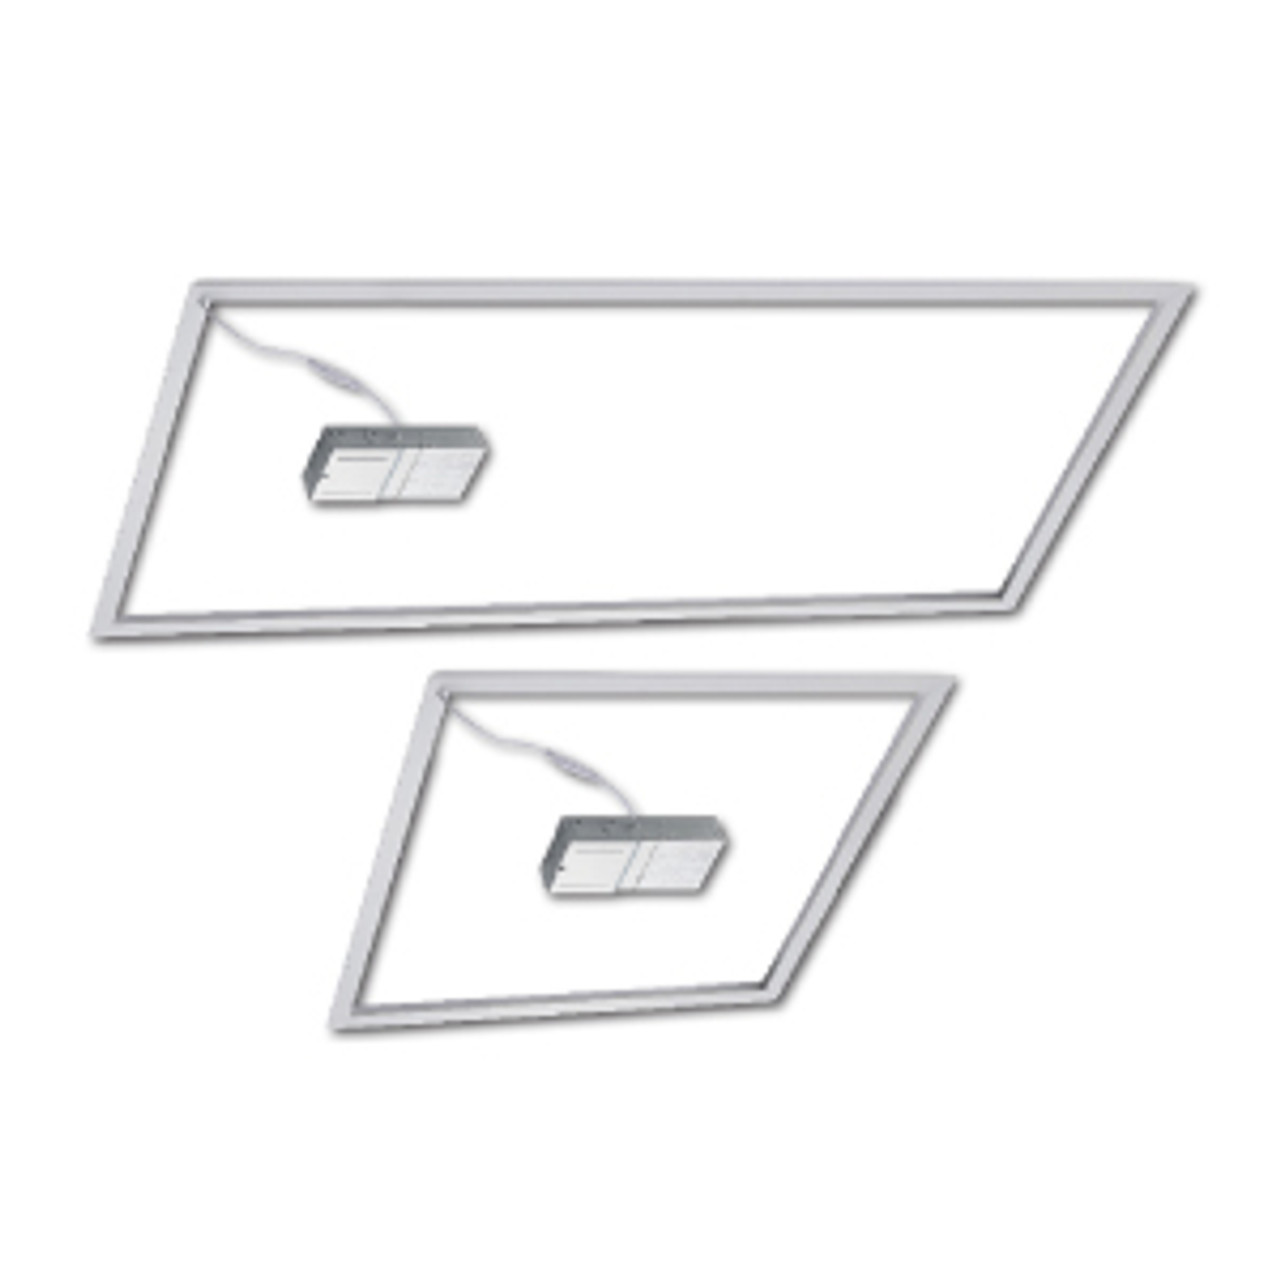 Led Edge Lit Grid Ceiling Tile Perimeter Light